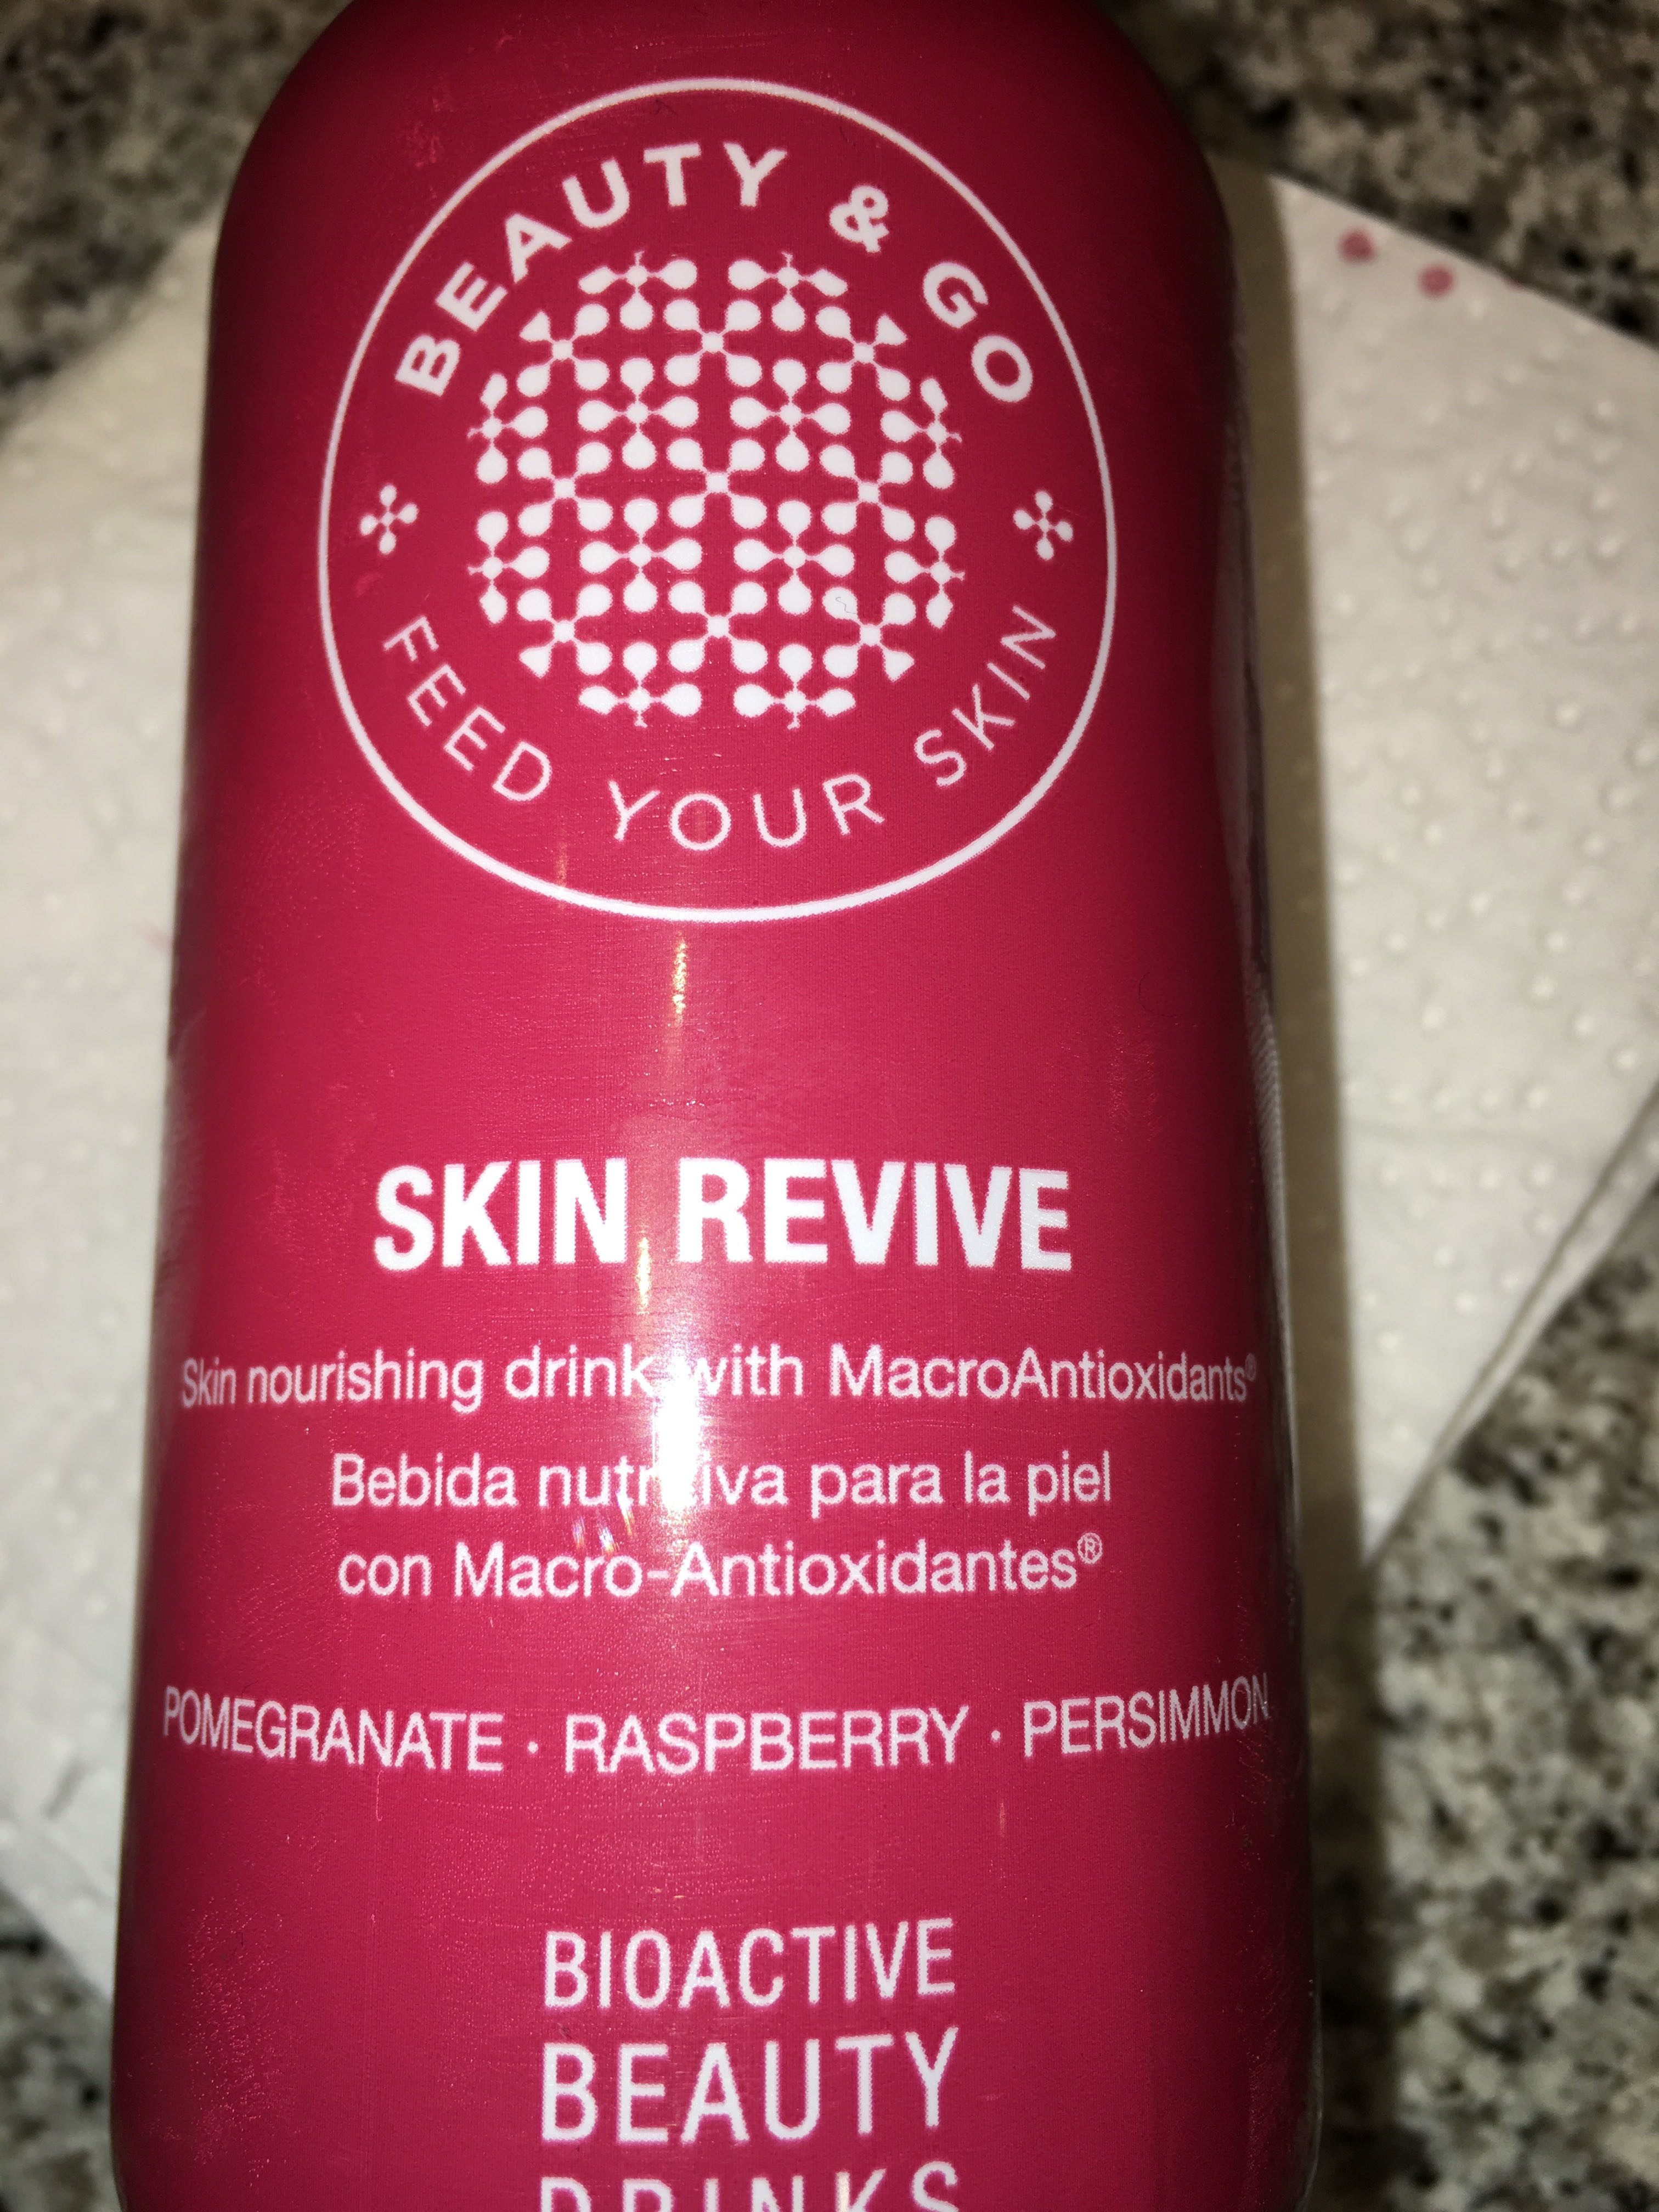 Skin Revive - Product